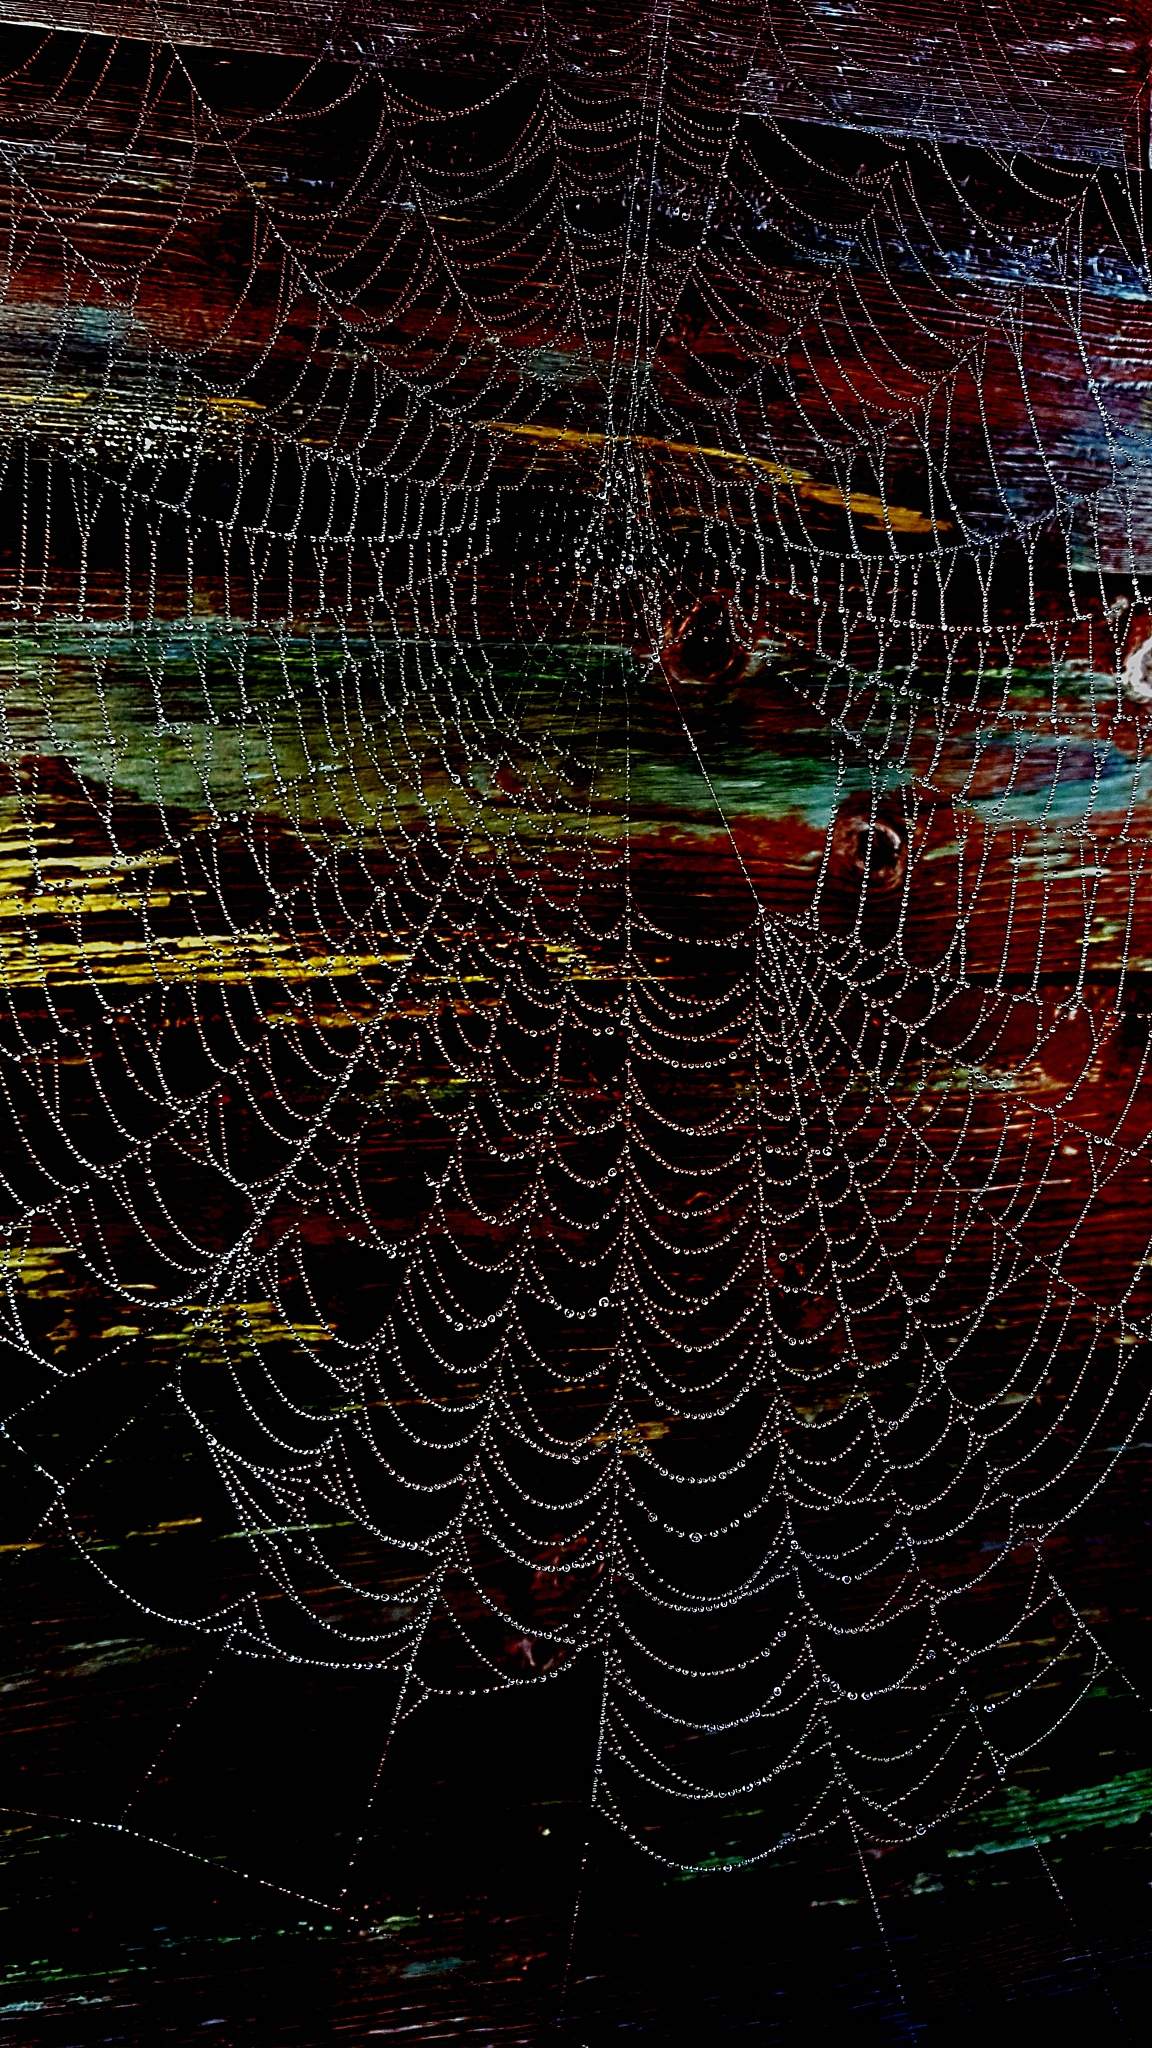 Spider web (Edited from my phone) by ♥ Christina Dixon ♥